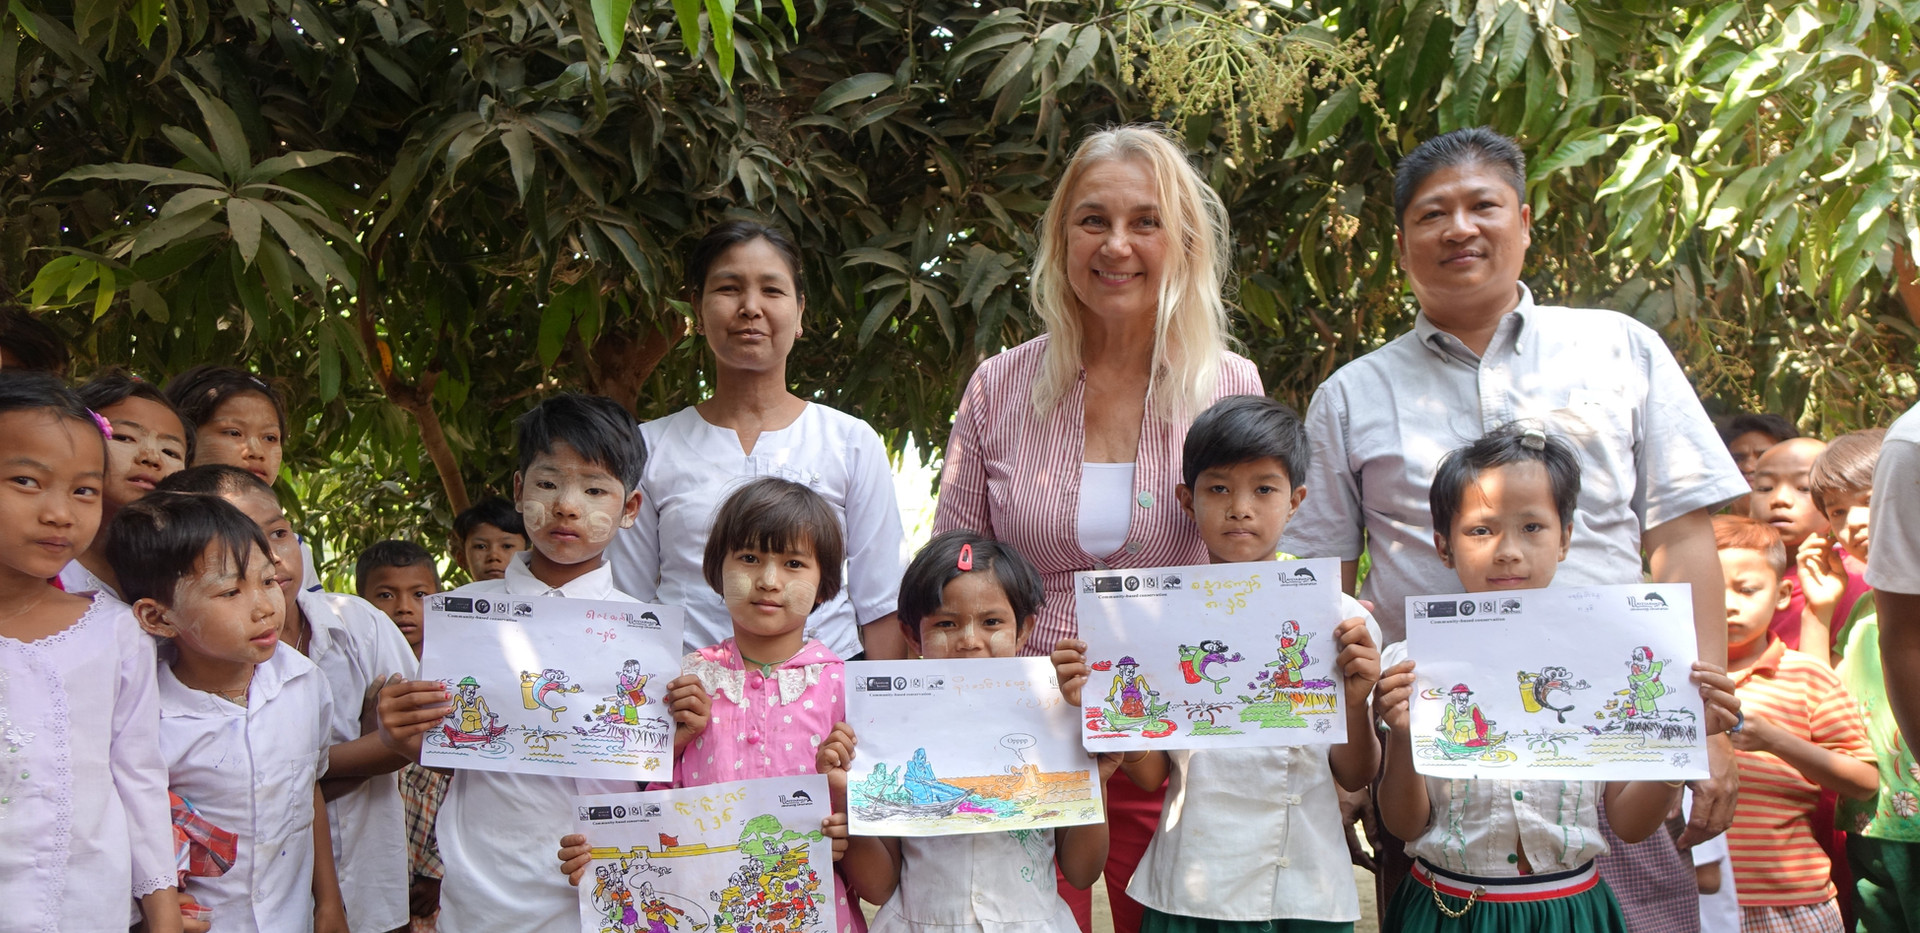 Training children in environmental protection